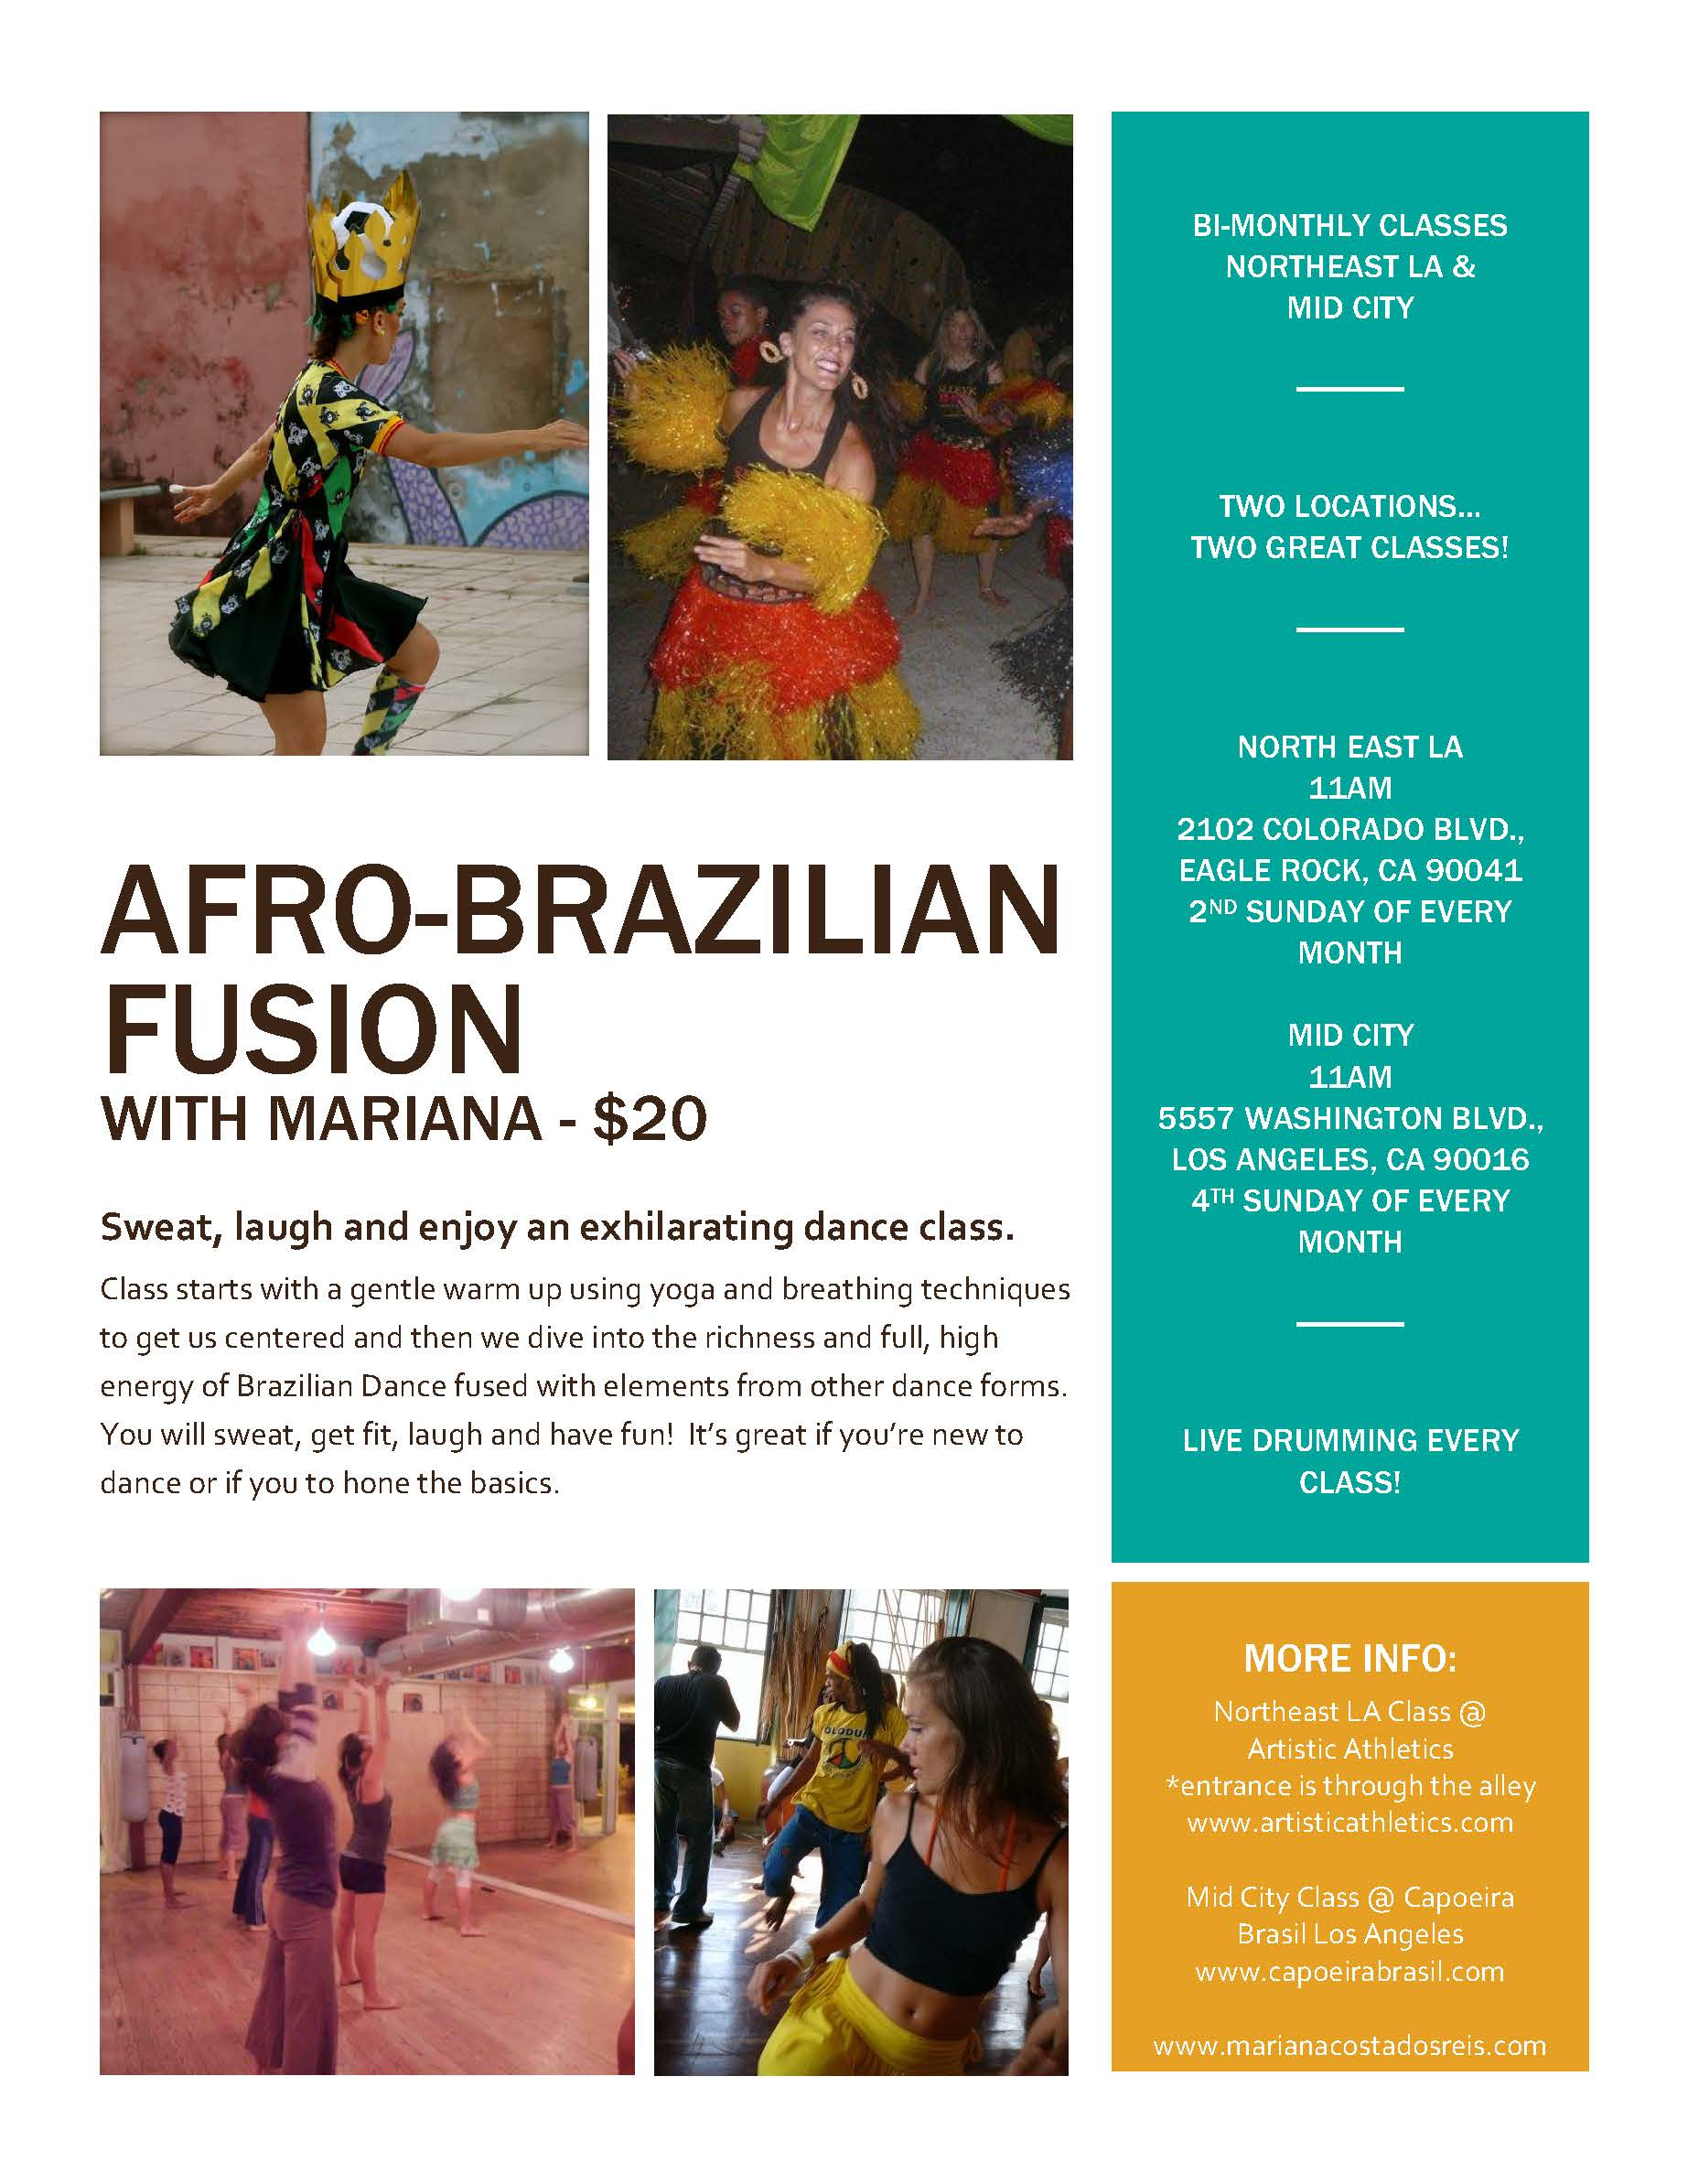 Afro-Brazilian Dance Flyer_FINAL (2).jpg